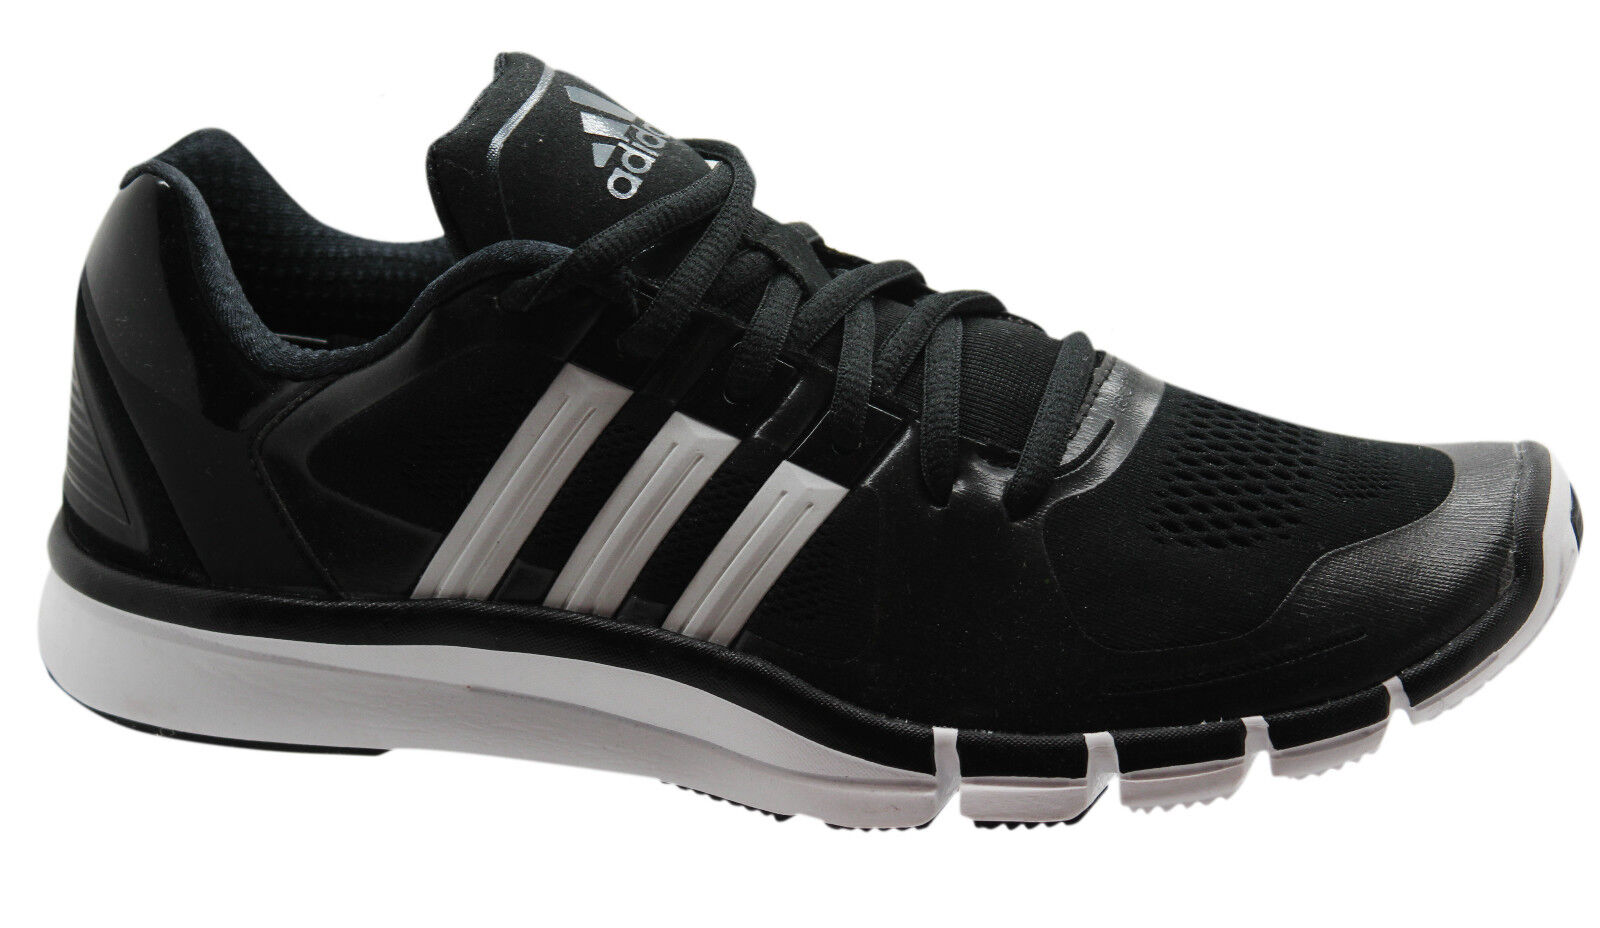 Adidas Sports Performance Adipure 360.2 Mens Trainers Running Shoes ... d5d3004356e48